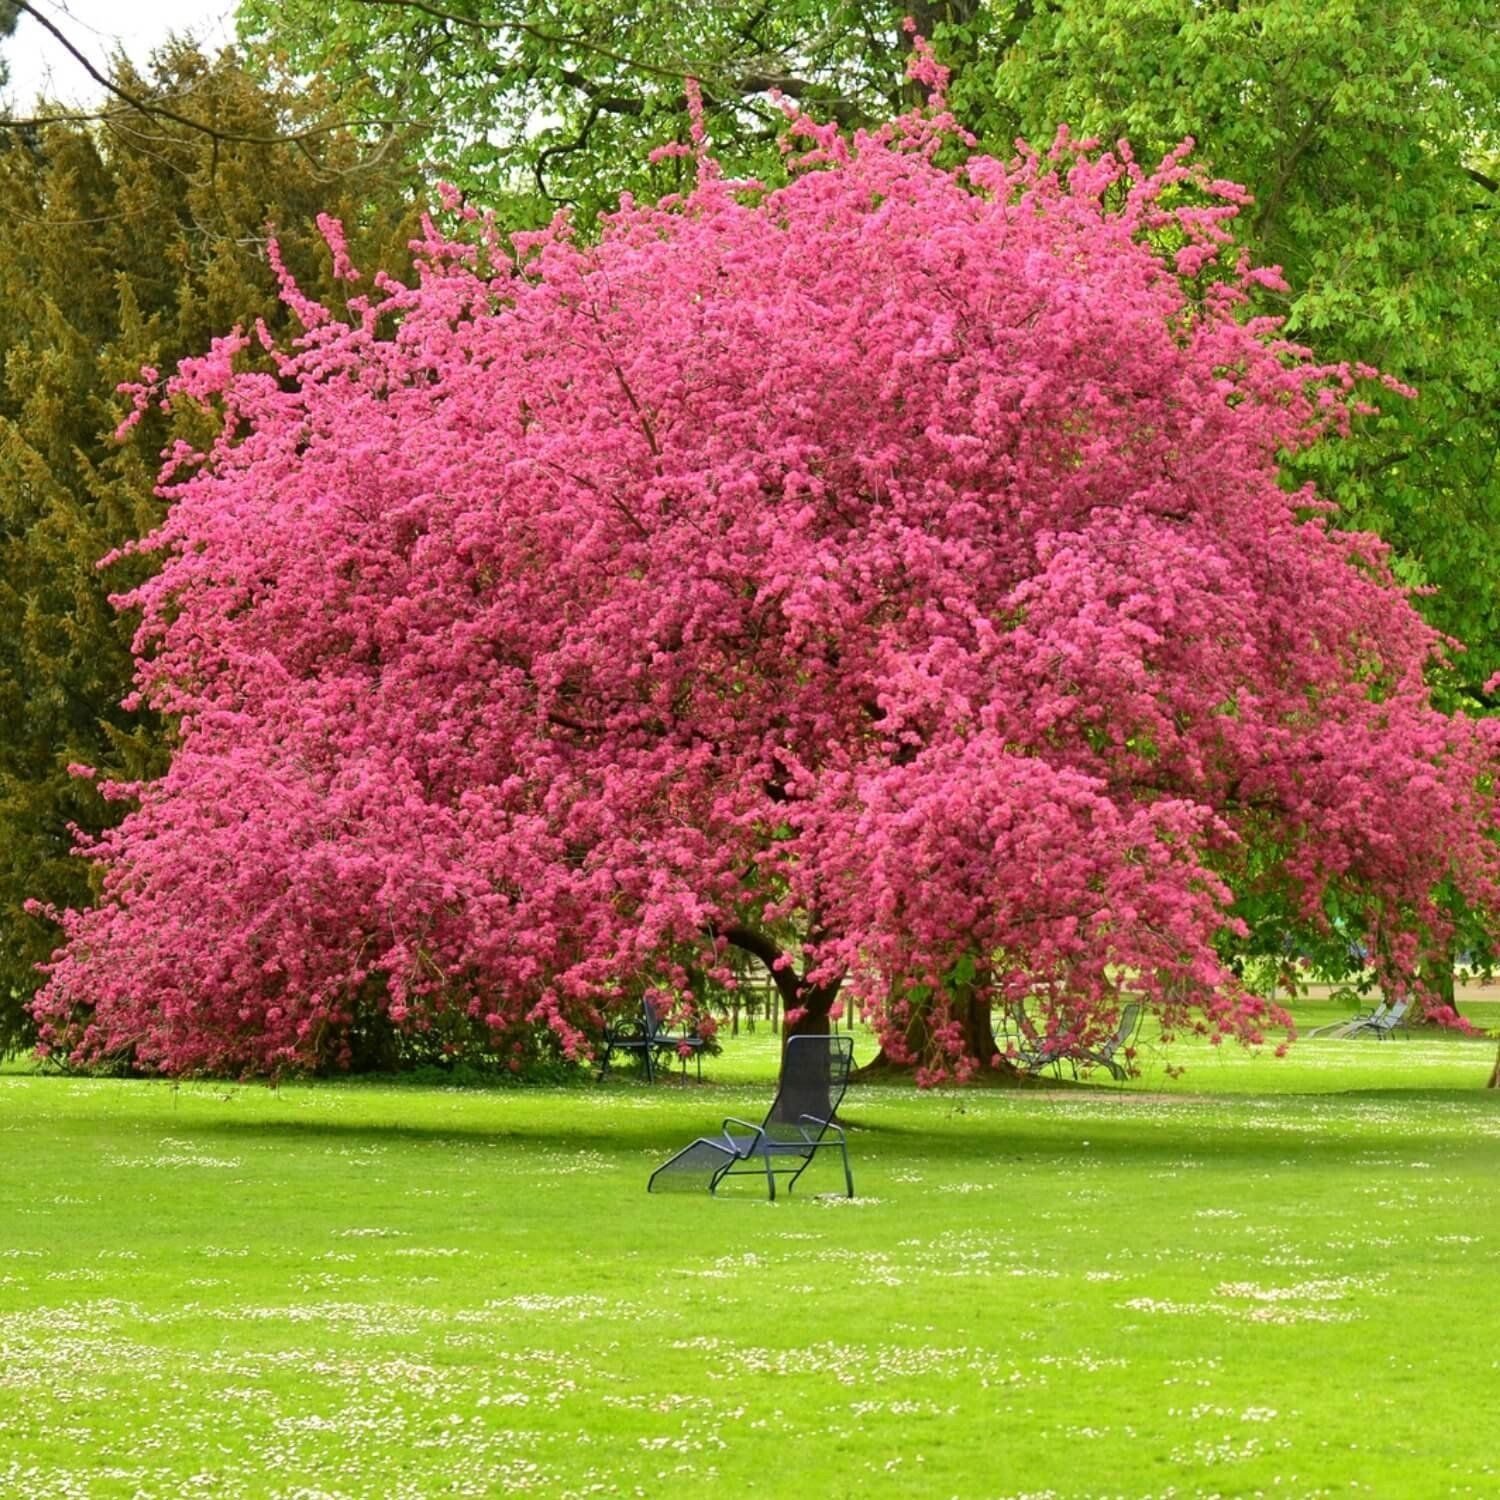 Living Memorial Tree With Biodegradable Burial Urn In 2021 Pink Dogwood Tree Dogwood Trees Pink Dogwood